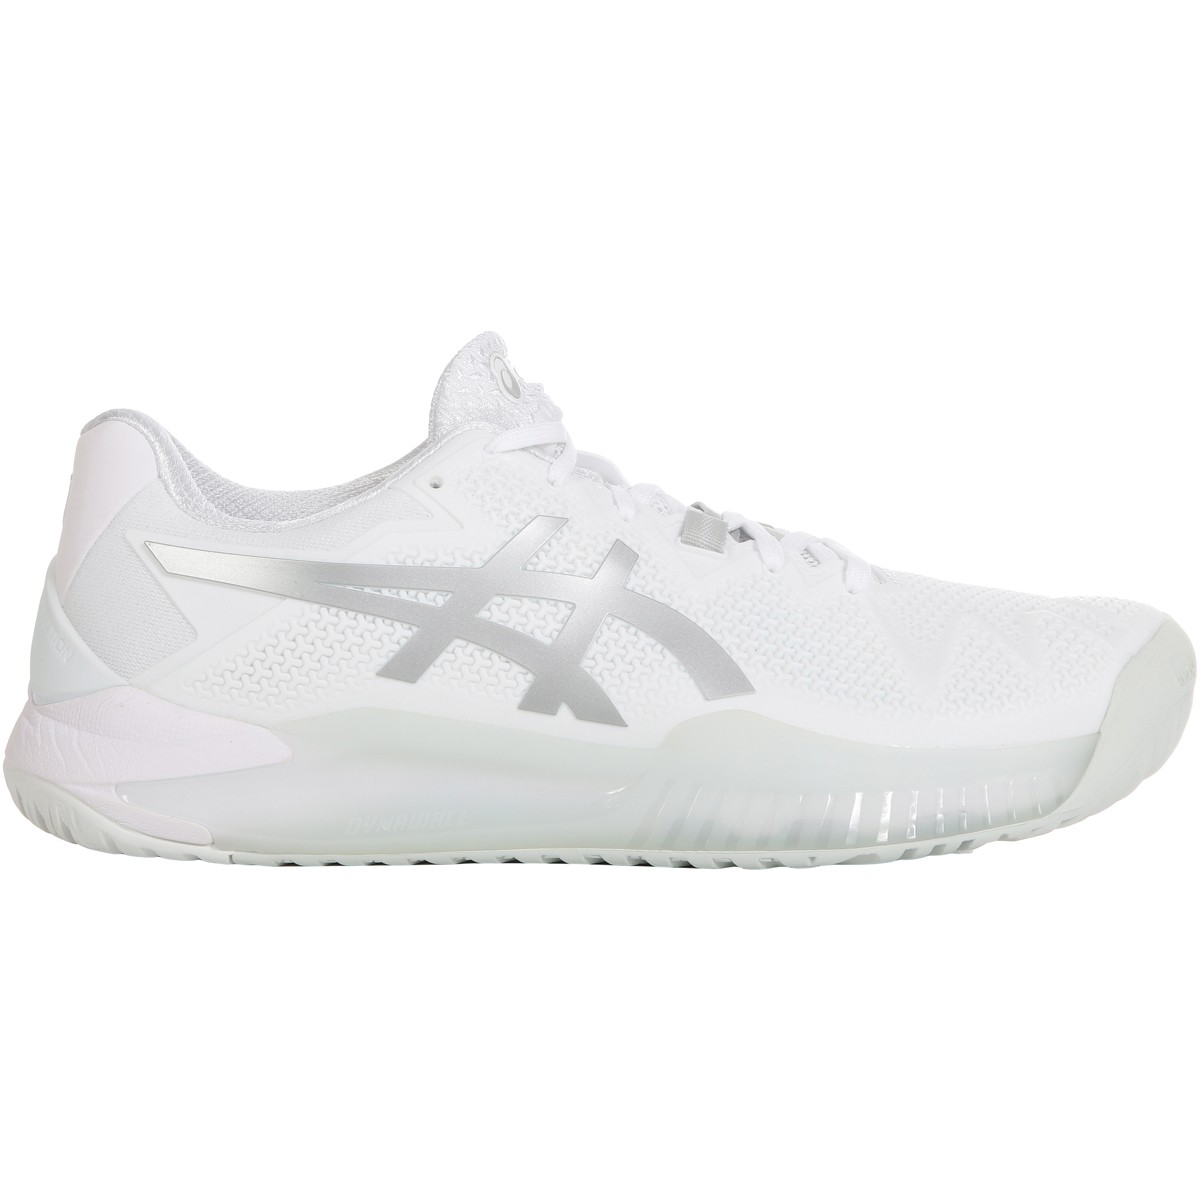 CHAUSSURES ASICS GEL RESOLUTION 8 TOUTES SURFACES